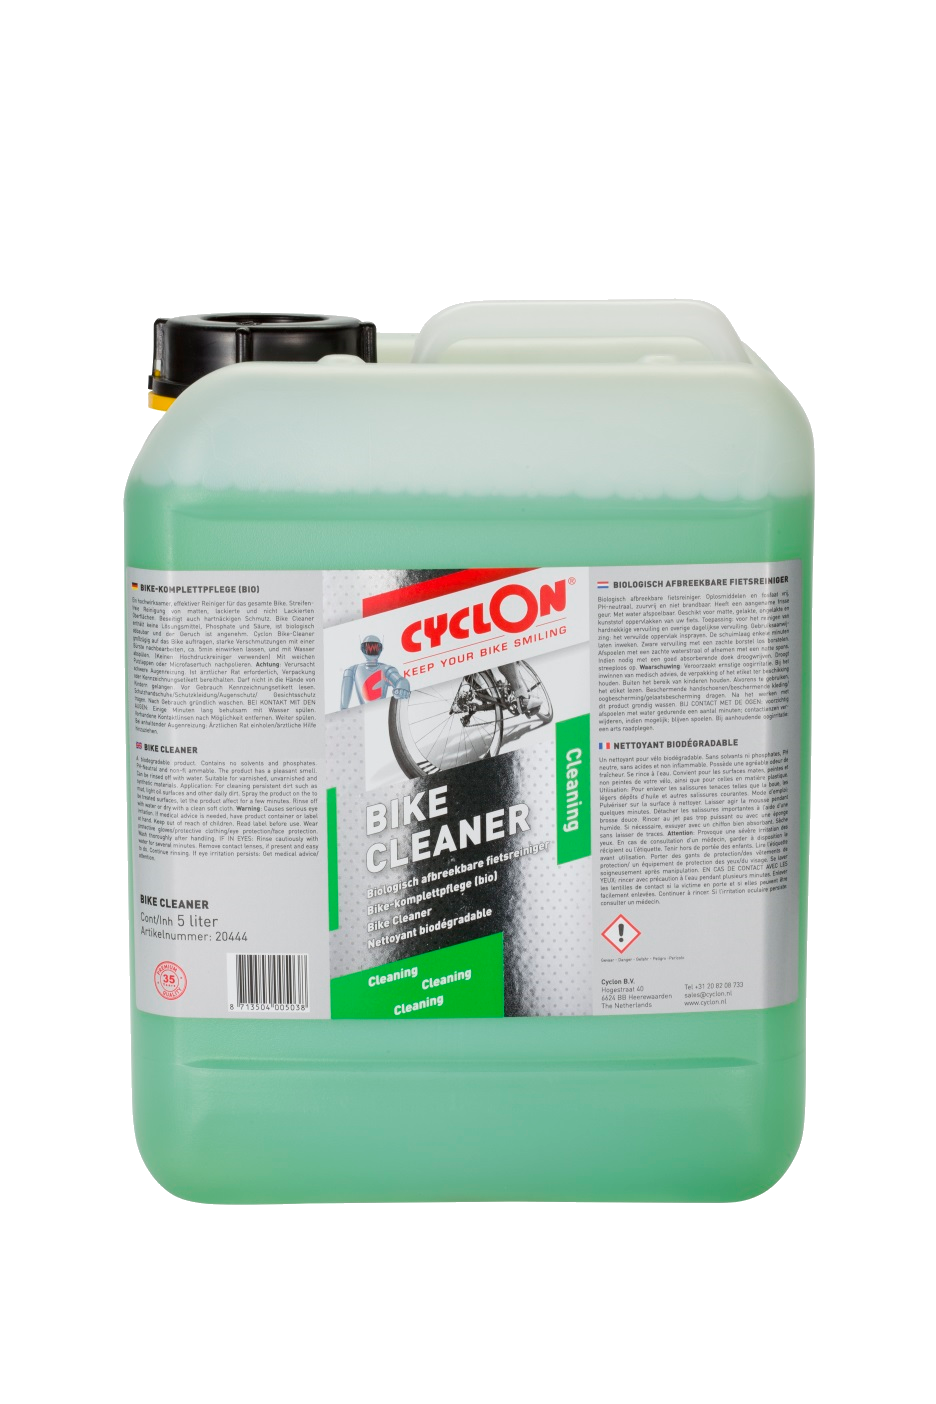 100% Biodegradable Bike Cleaner 5 litre Cyclon Bike Care